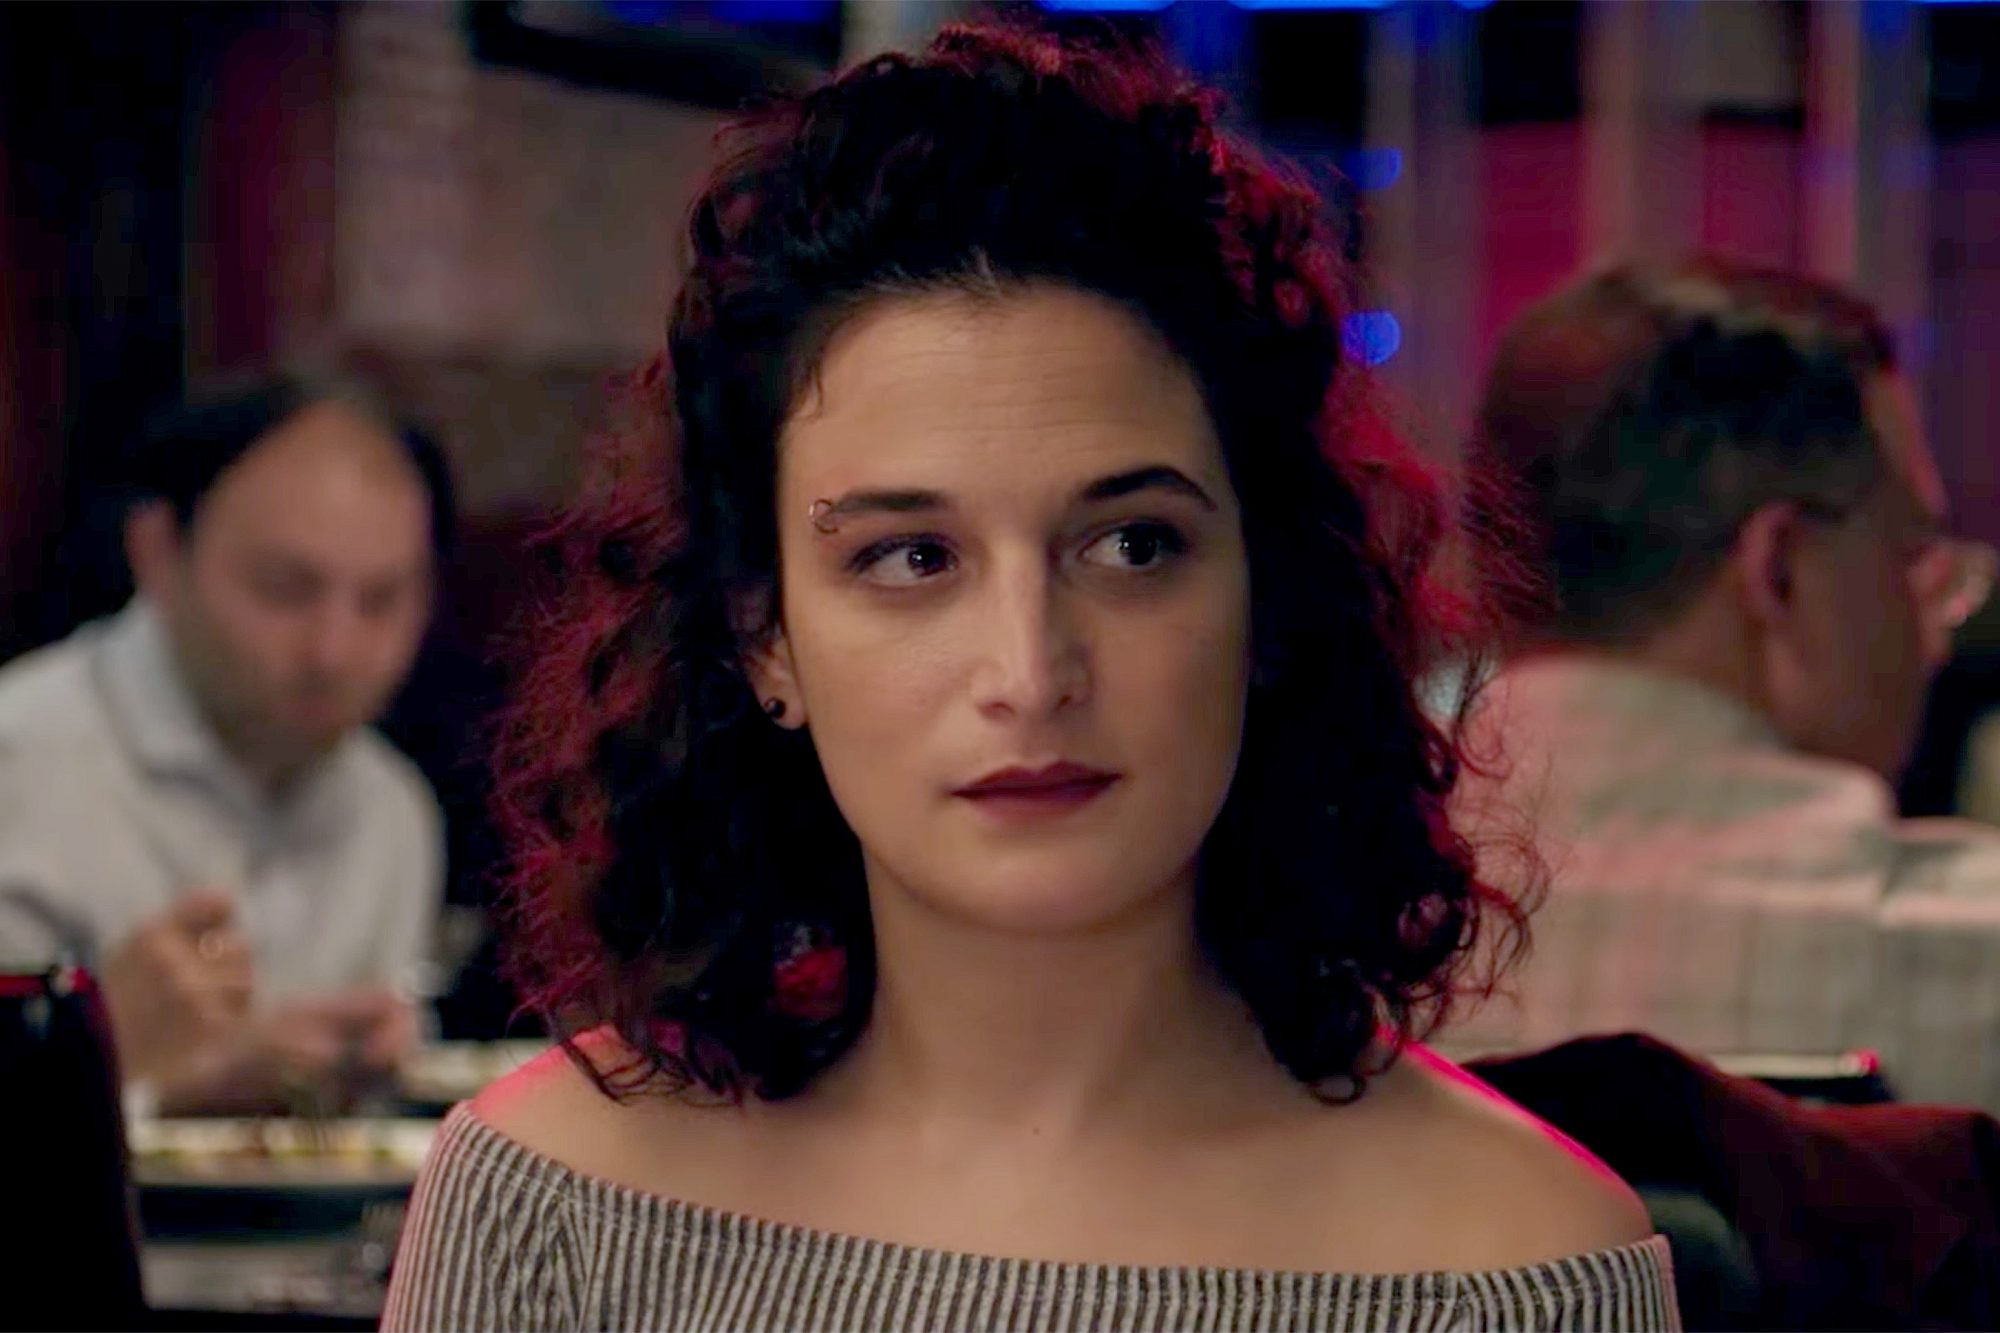 Jenny Slate on hummus, the pottery scene in 'Ghost,' and trying not to hate horses